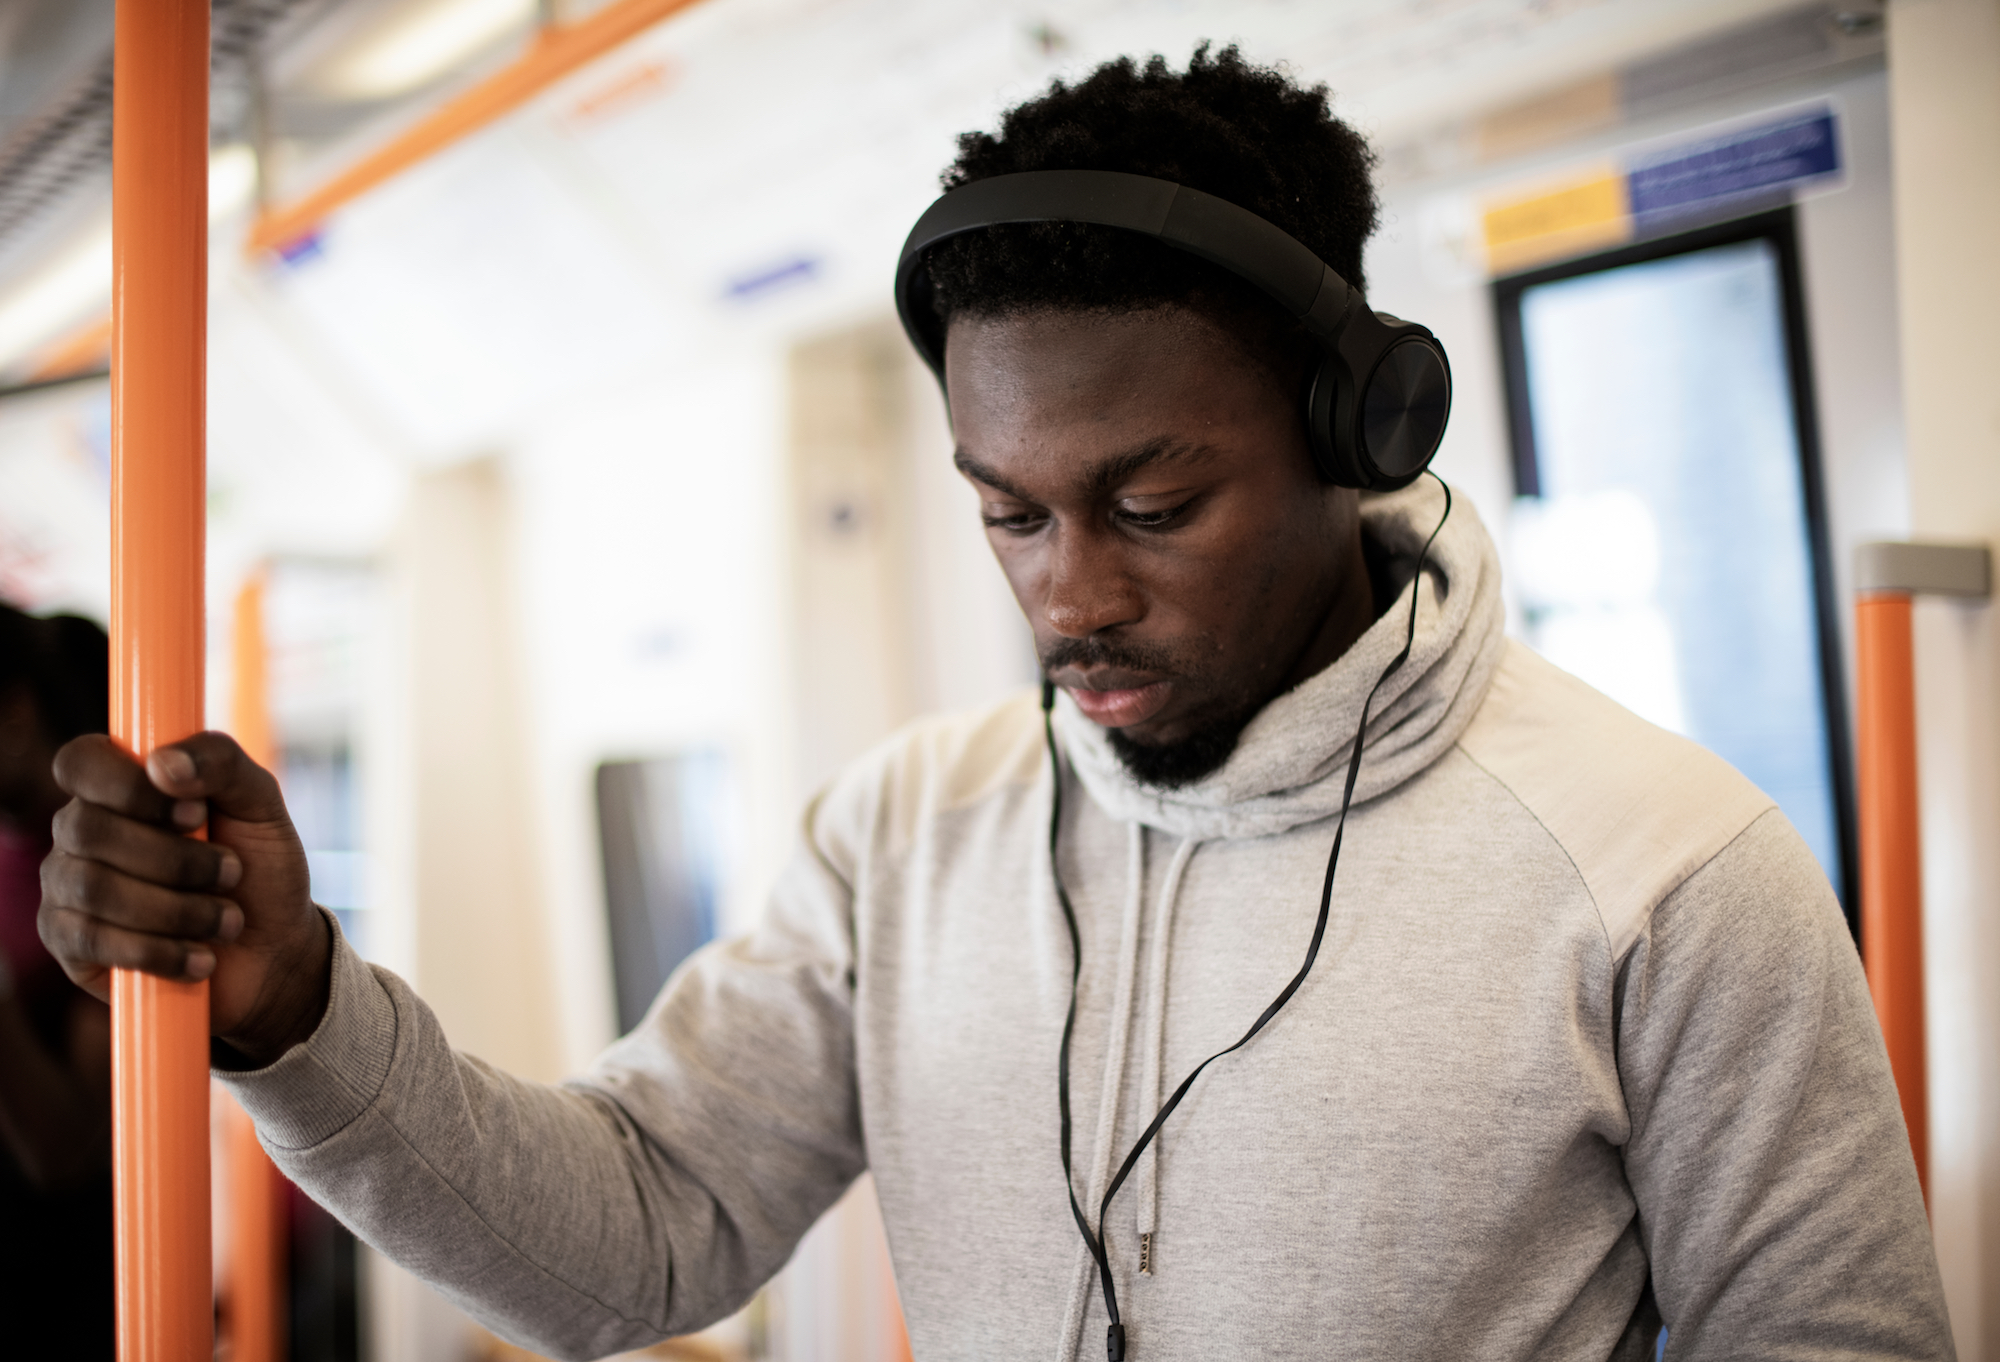 man on transit listening to a construction podcast on headphones